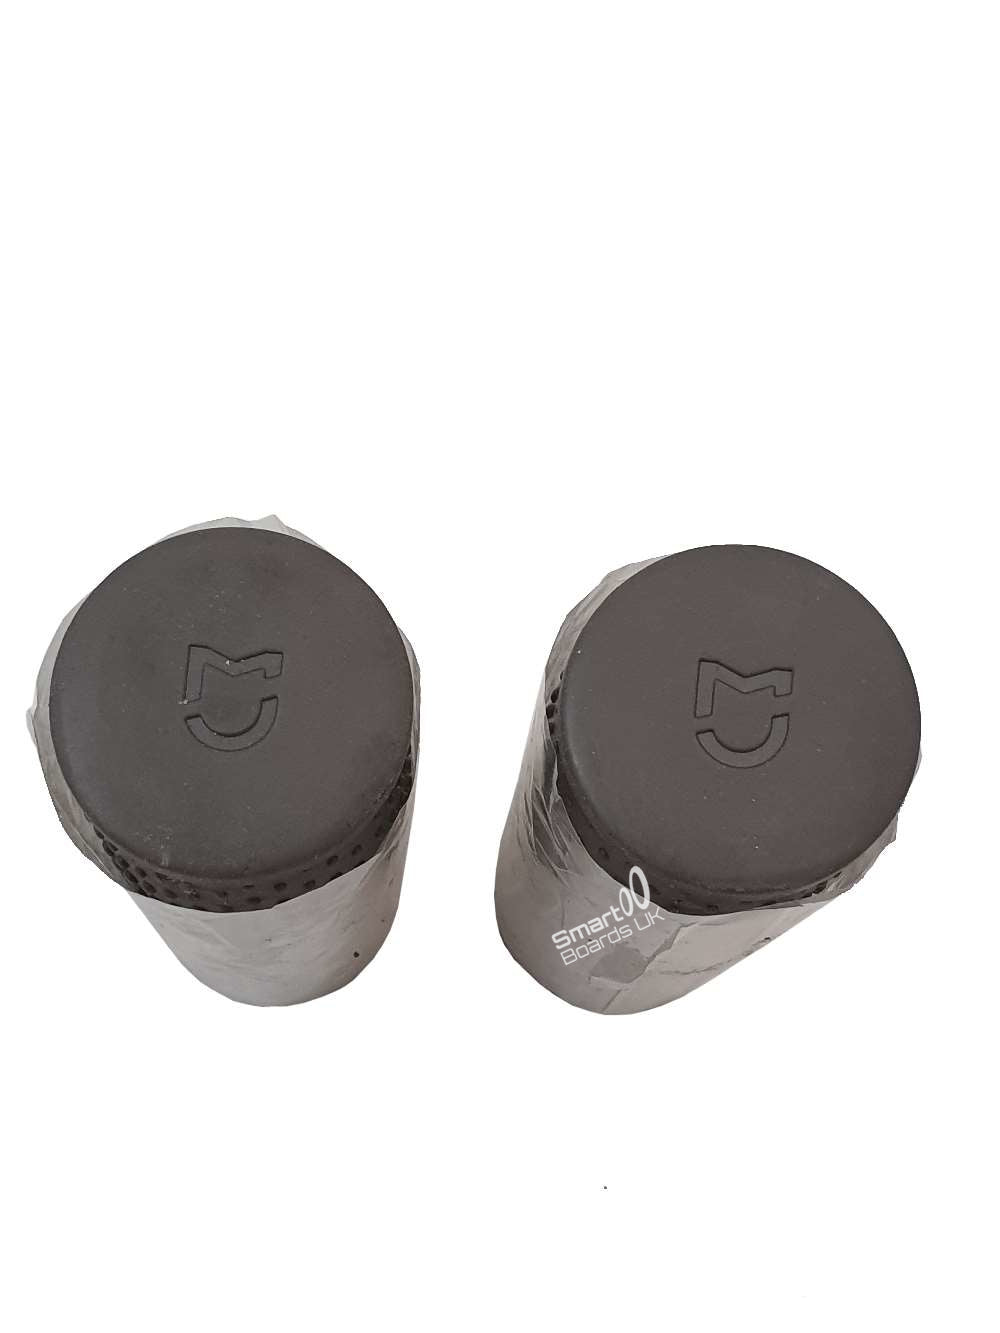 Genuine Xiaomi Mijia M365 Part - PRO - Handle Bar Rubber Grips (Pair)